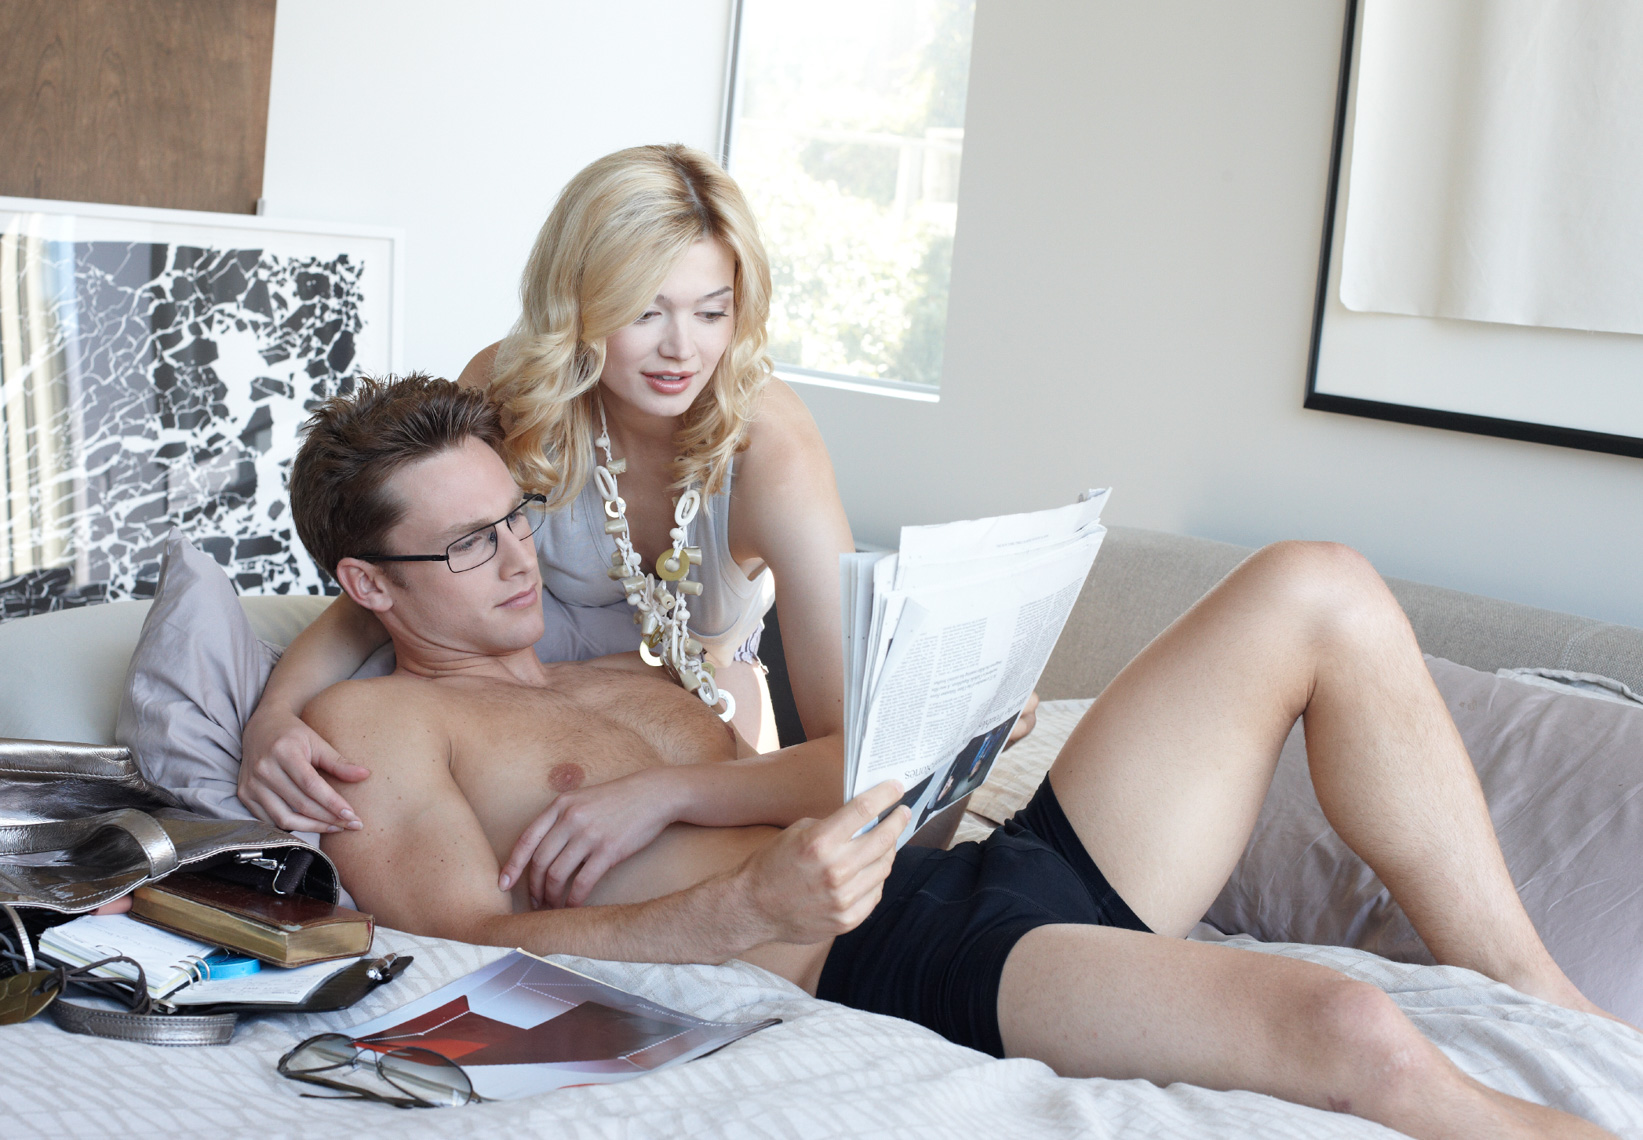 Blond woman leans over a man wearing black shorts with magazines on the bed